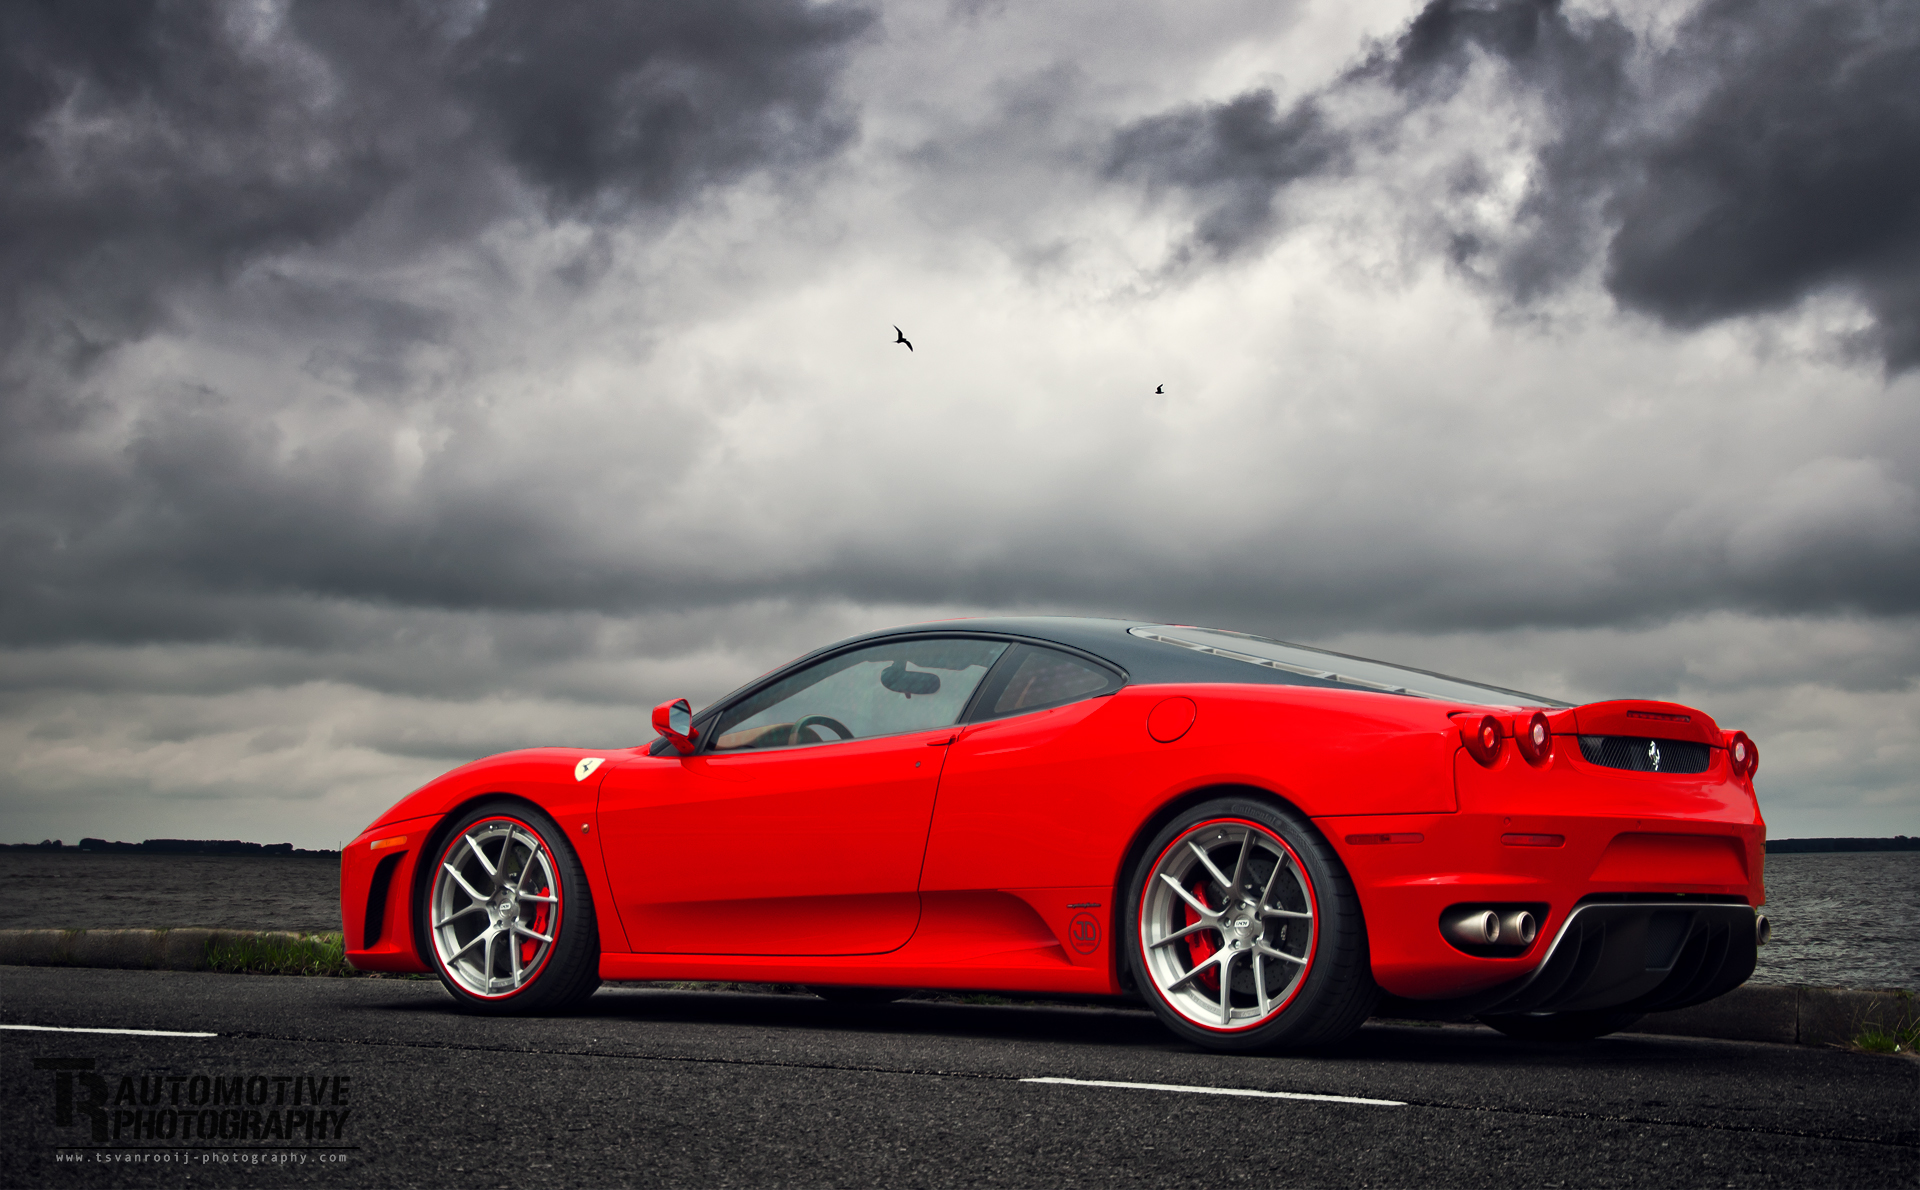 Ferrari F430 wheels #2